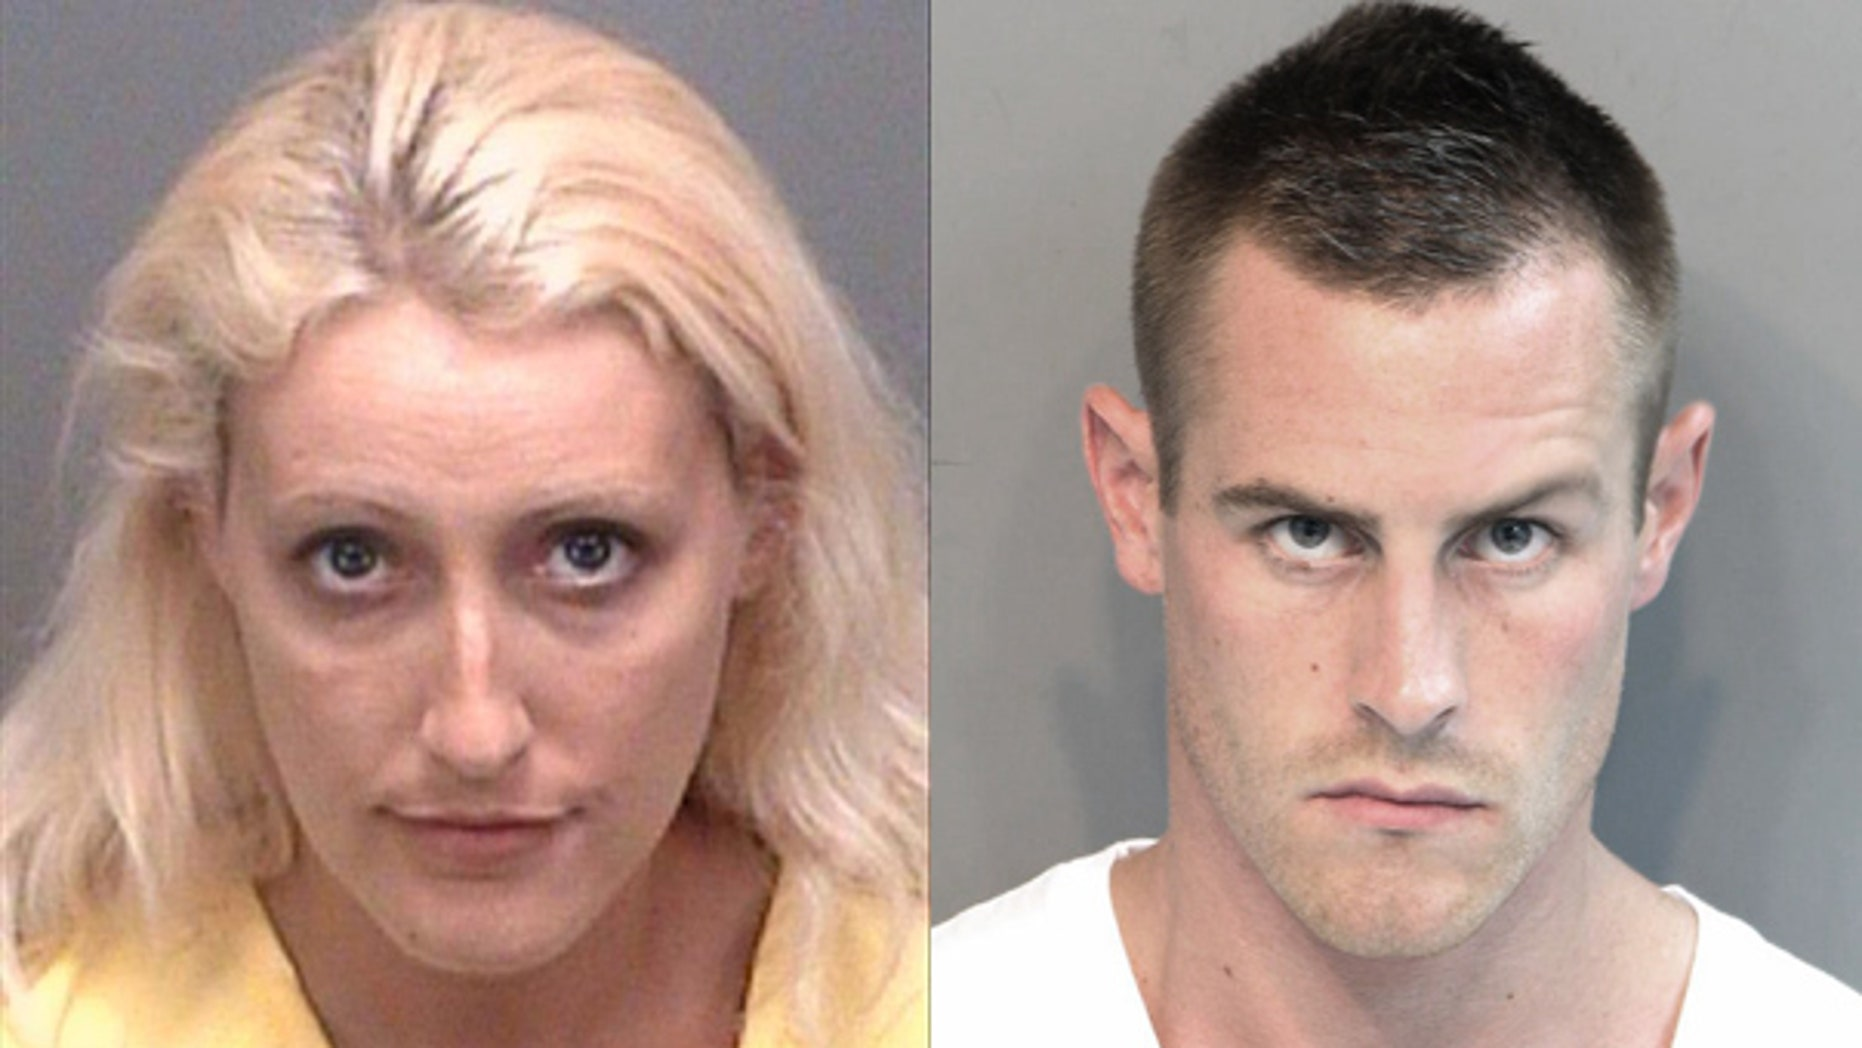 Amanda Logue, 28, and her boyfriend Jason Andrews, 27, stabbed and sledgehammered a Florida tattoo parlor owner to death after a party at the man's home in a crime plotted over text messages, Florida police say.